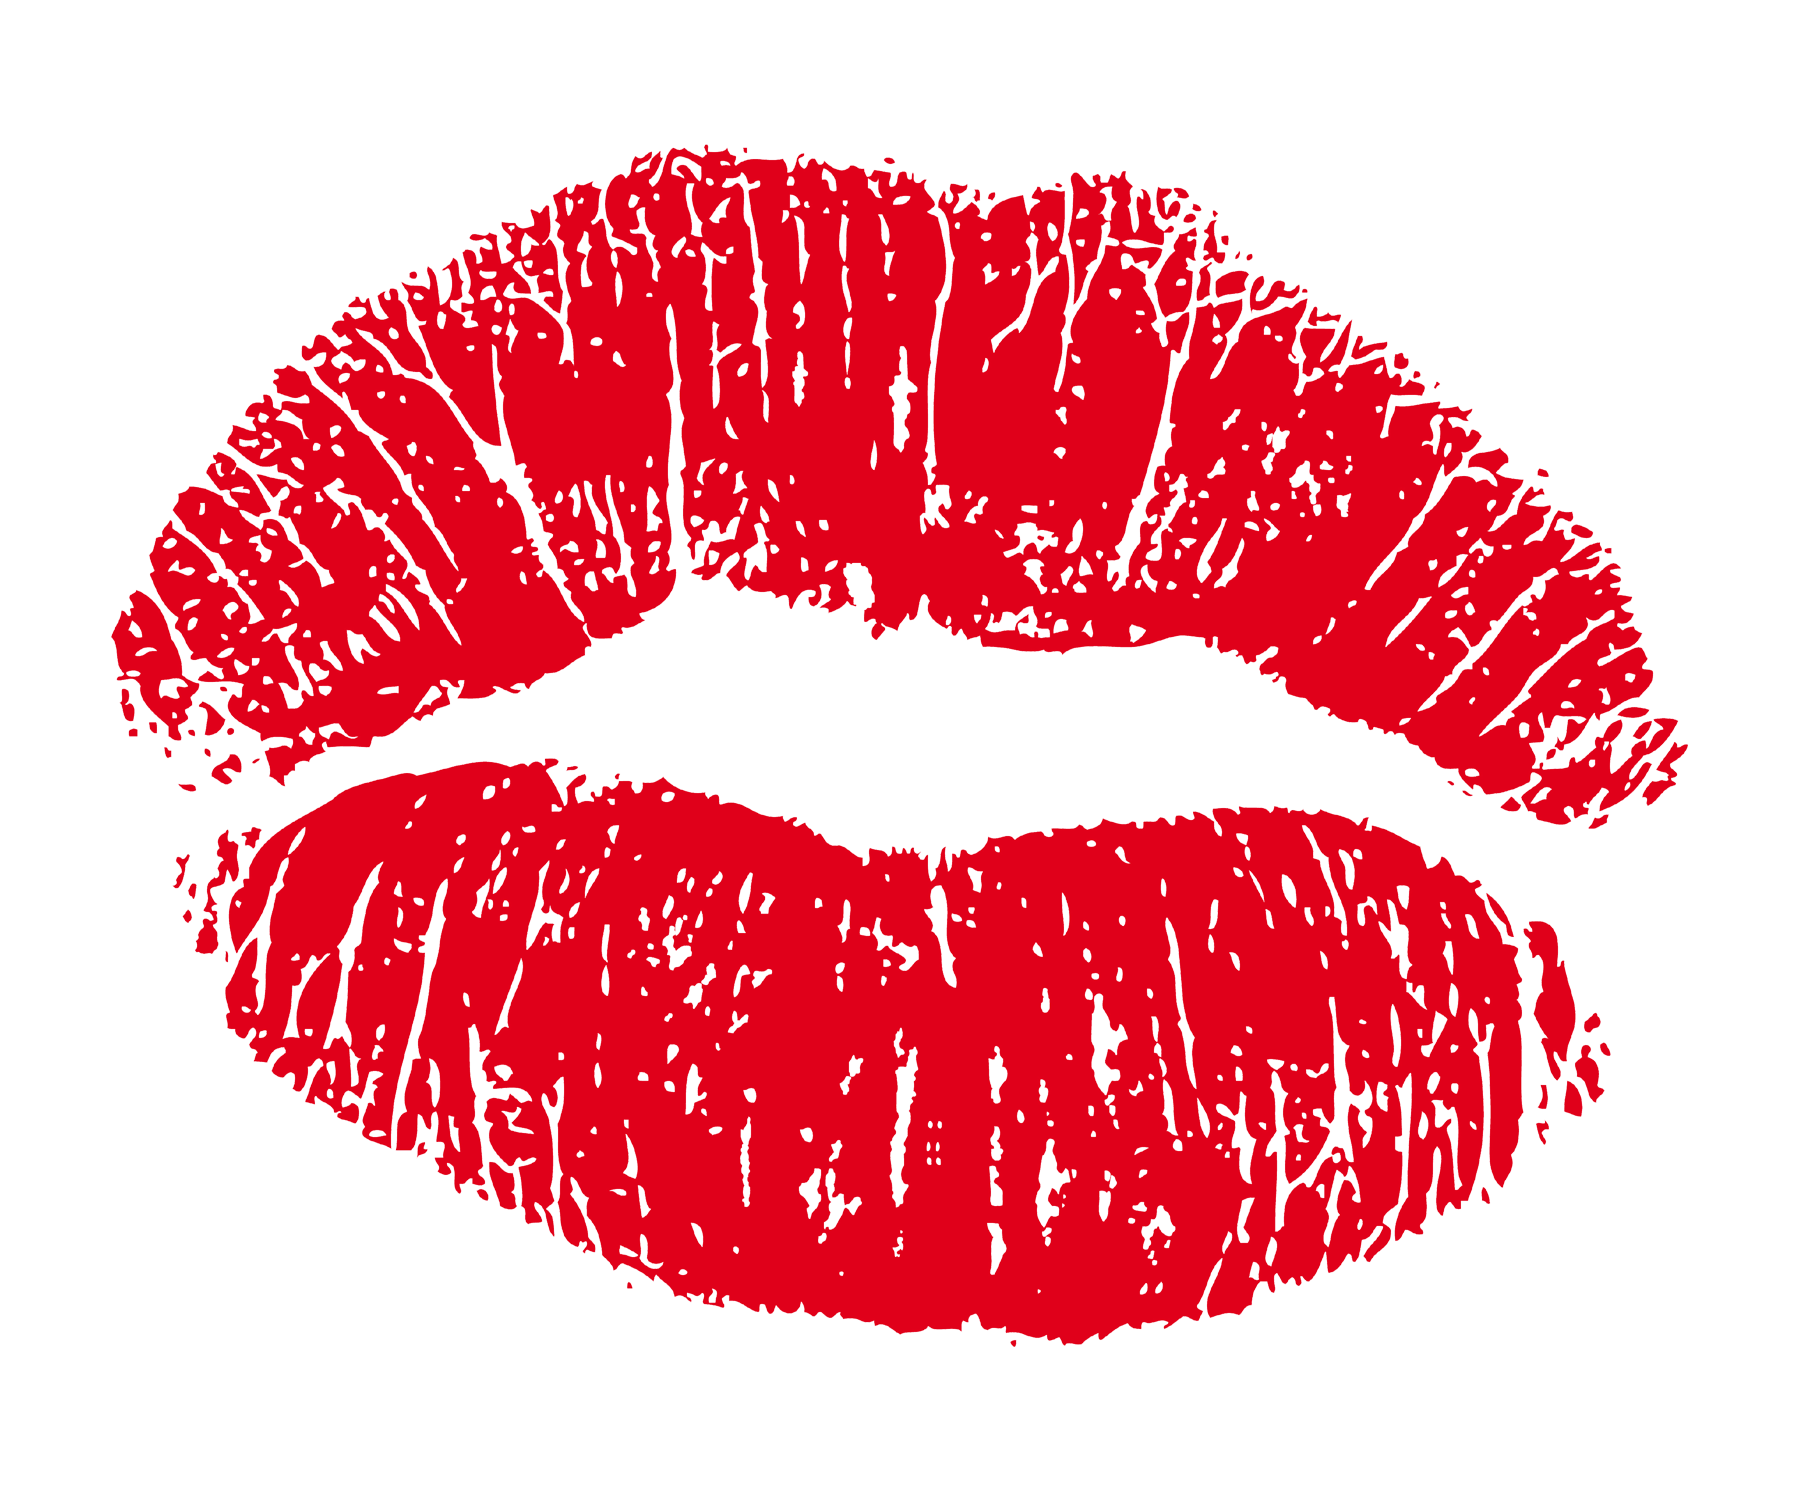 Kiss clipart #6, Download drawings